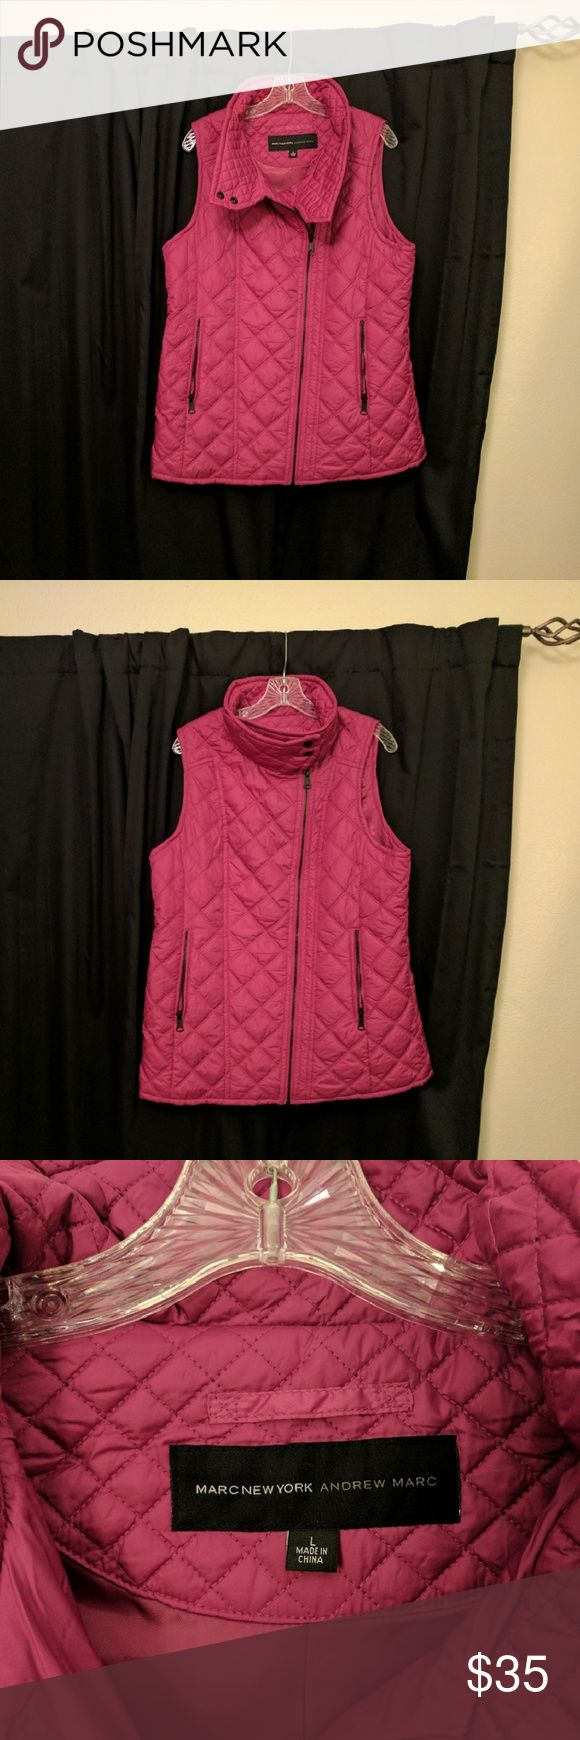 Andrew Marc Puffer Vest Super cute pink/berry-colored Andrew Marc asymmetrical quilted puffer vest. Andrew Marc Jackets & Coats Vests